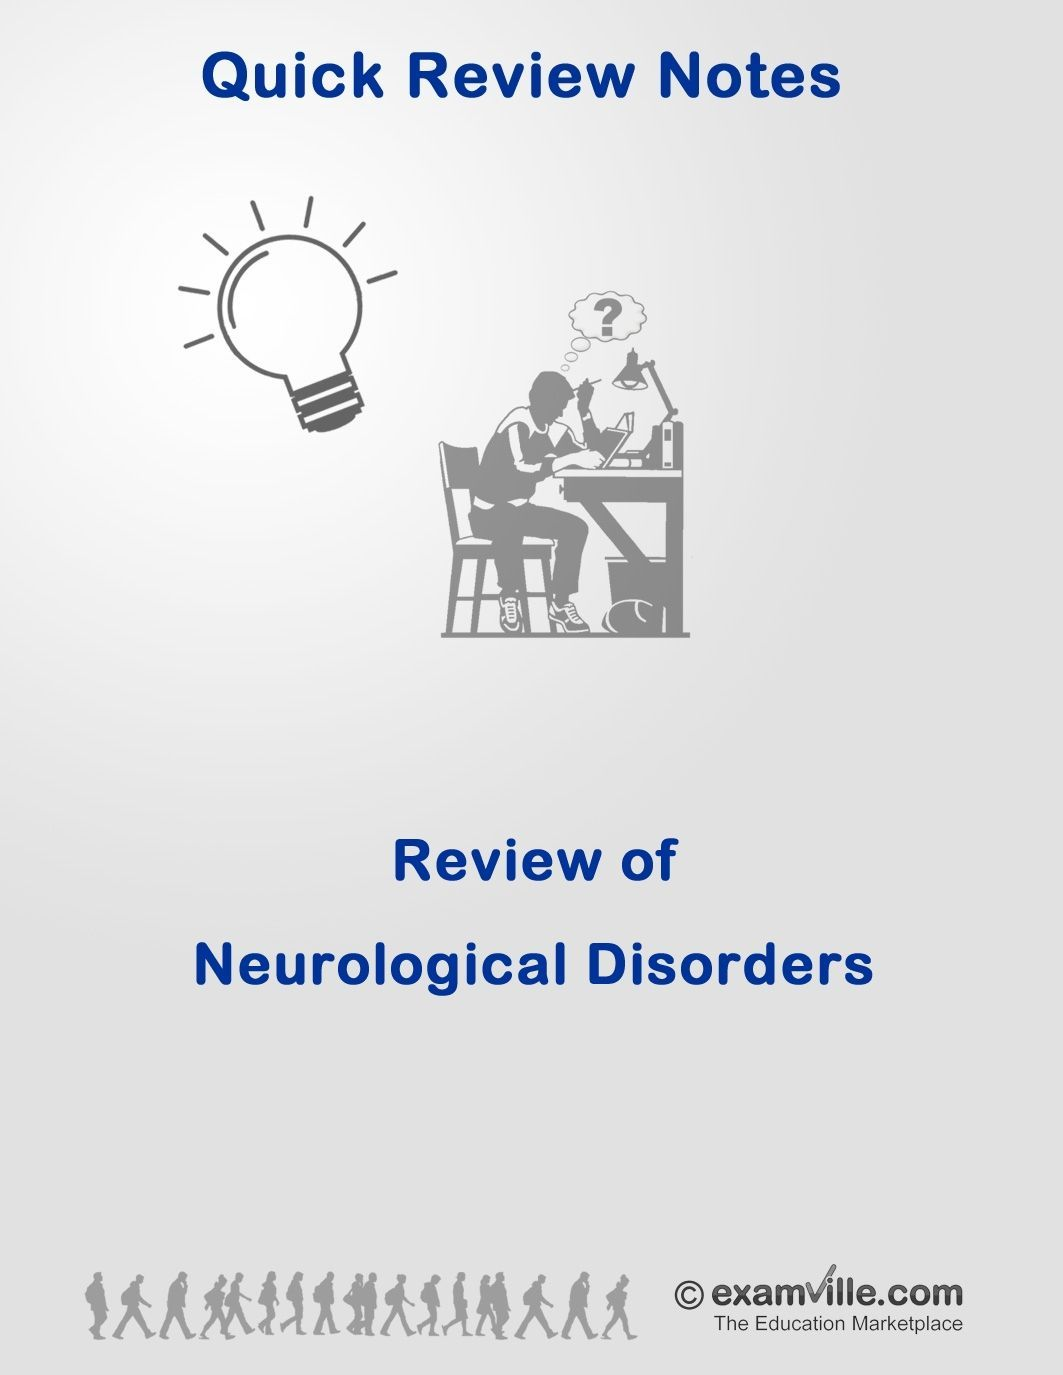 Quick Review of Neurological Disorders in Humans #education #science  #school #college #math #teacher #download #literature #studyaids